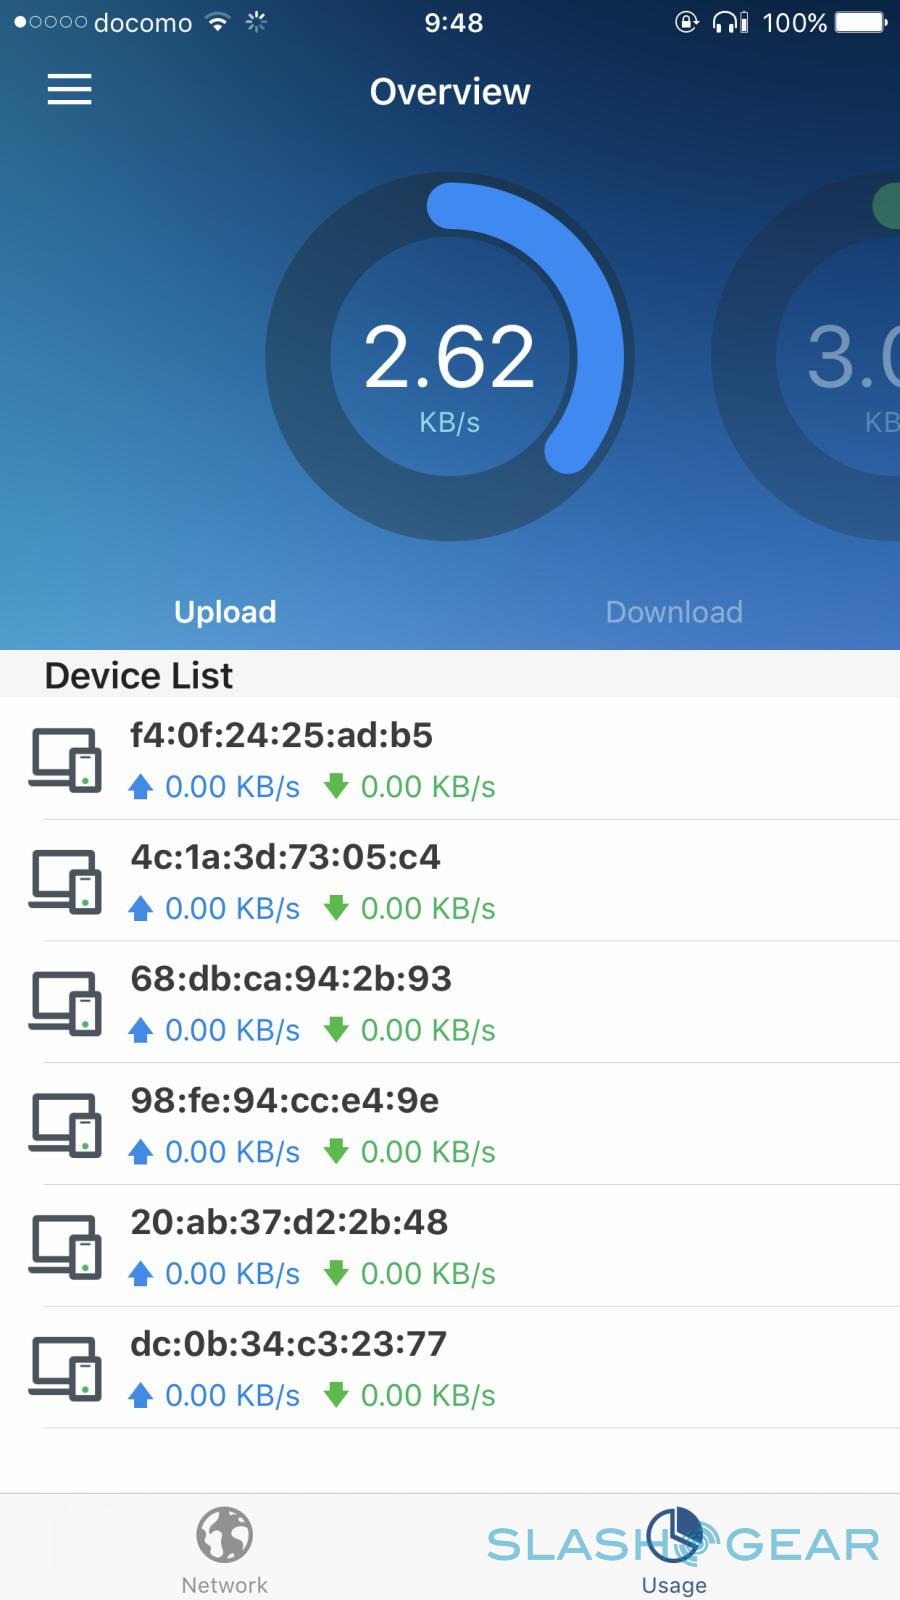 Synology RT2600ac Router Review - SlashGear